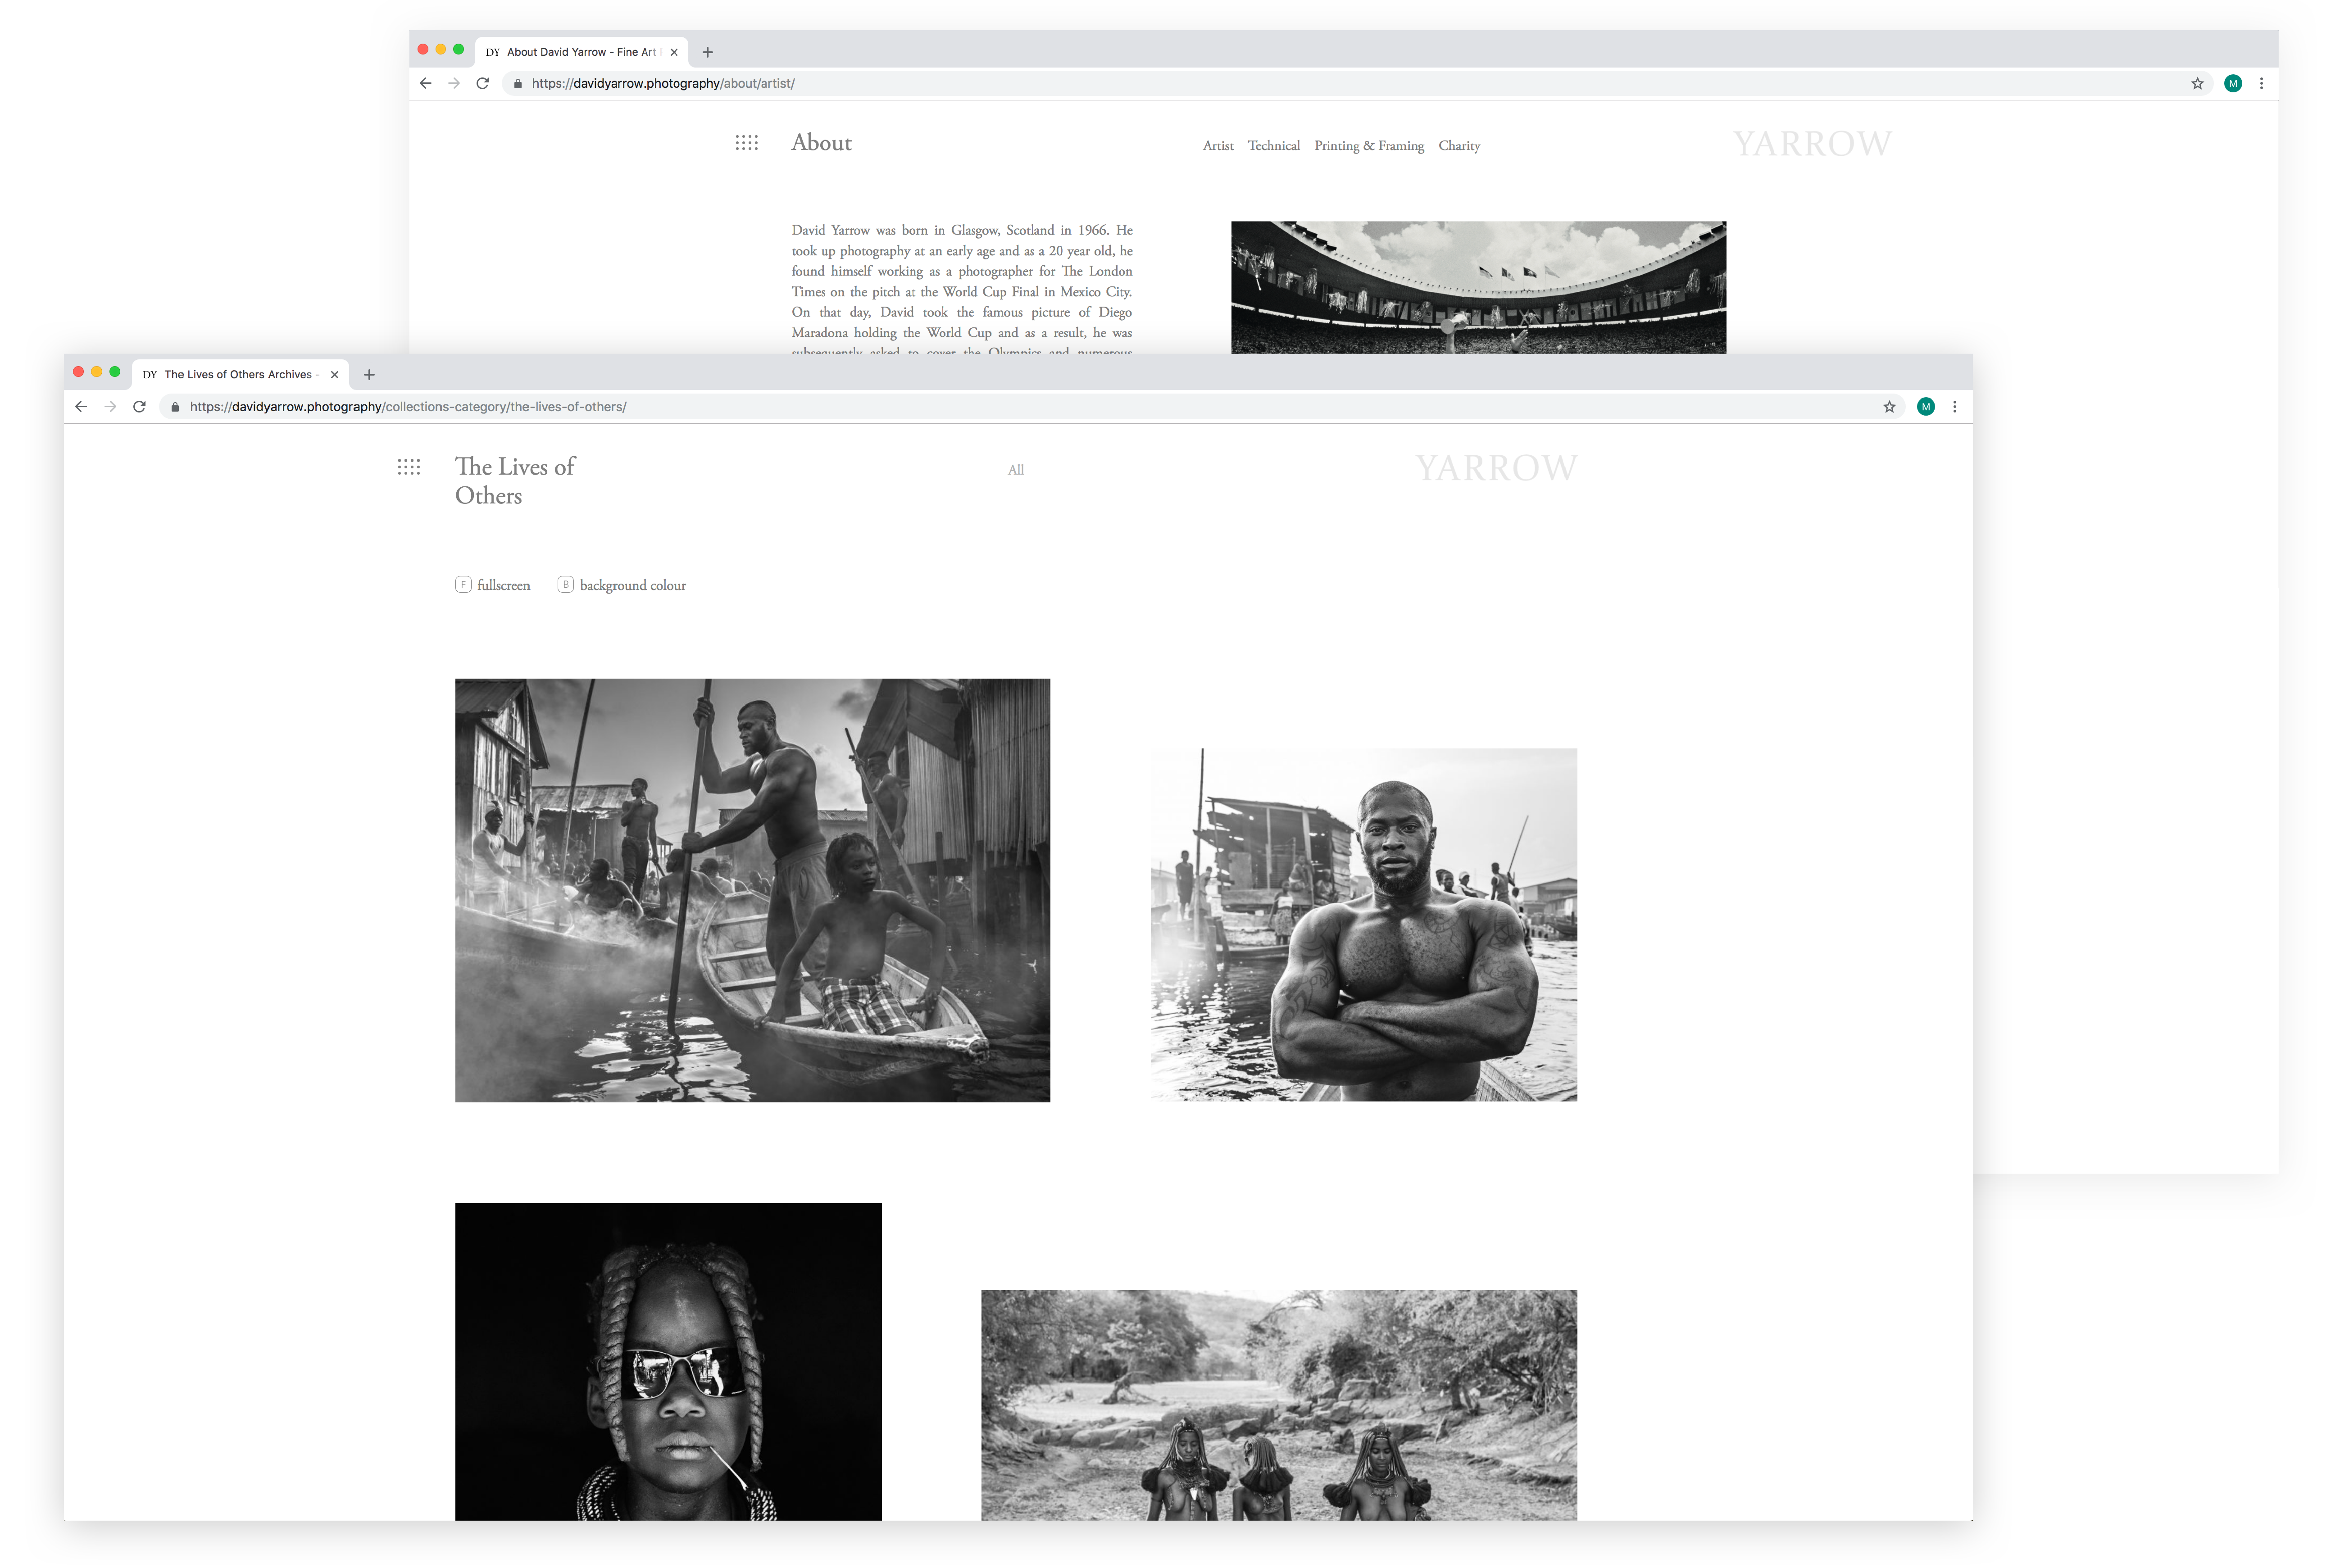 David Yarrow Photography website